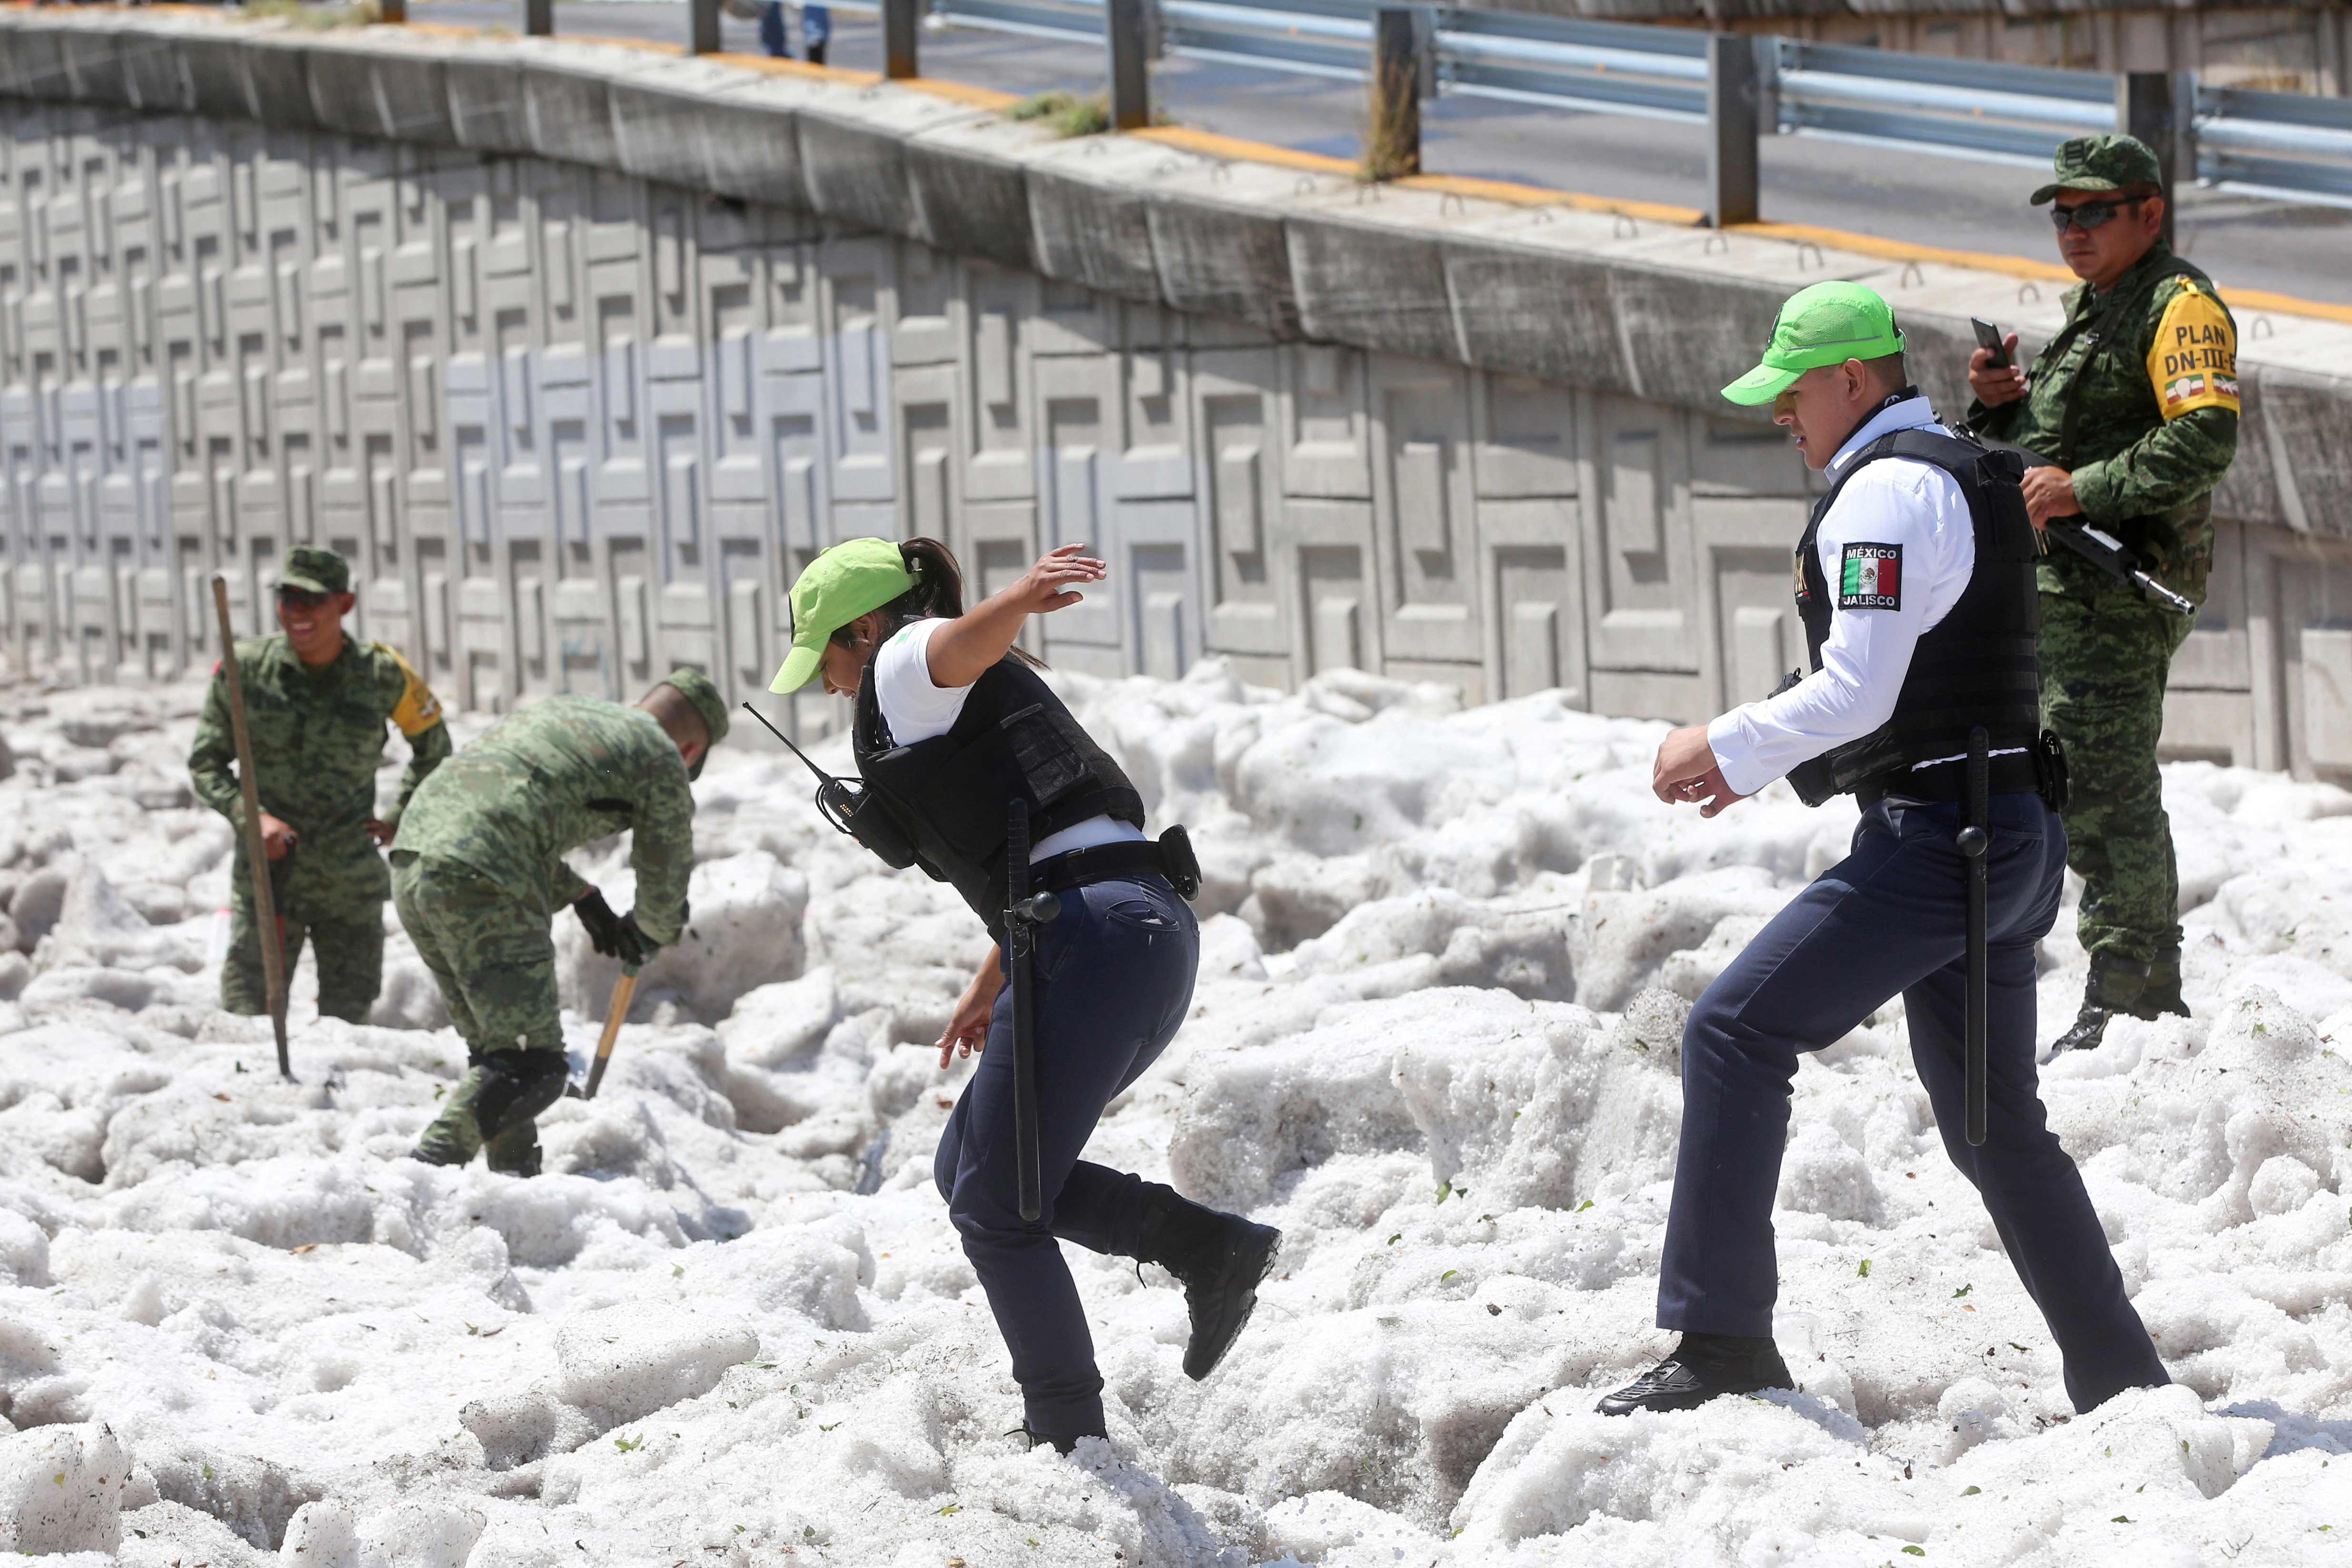 Security forces and soldiers try to clear away ice after a heavy storm of rain and hail in Guadalajara